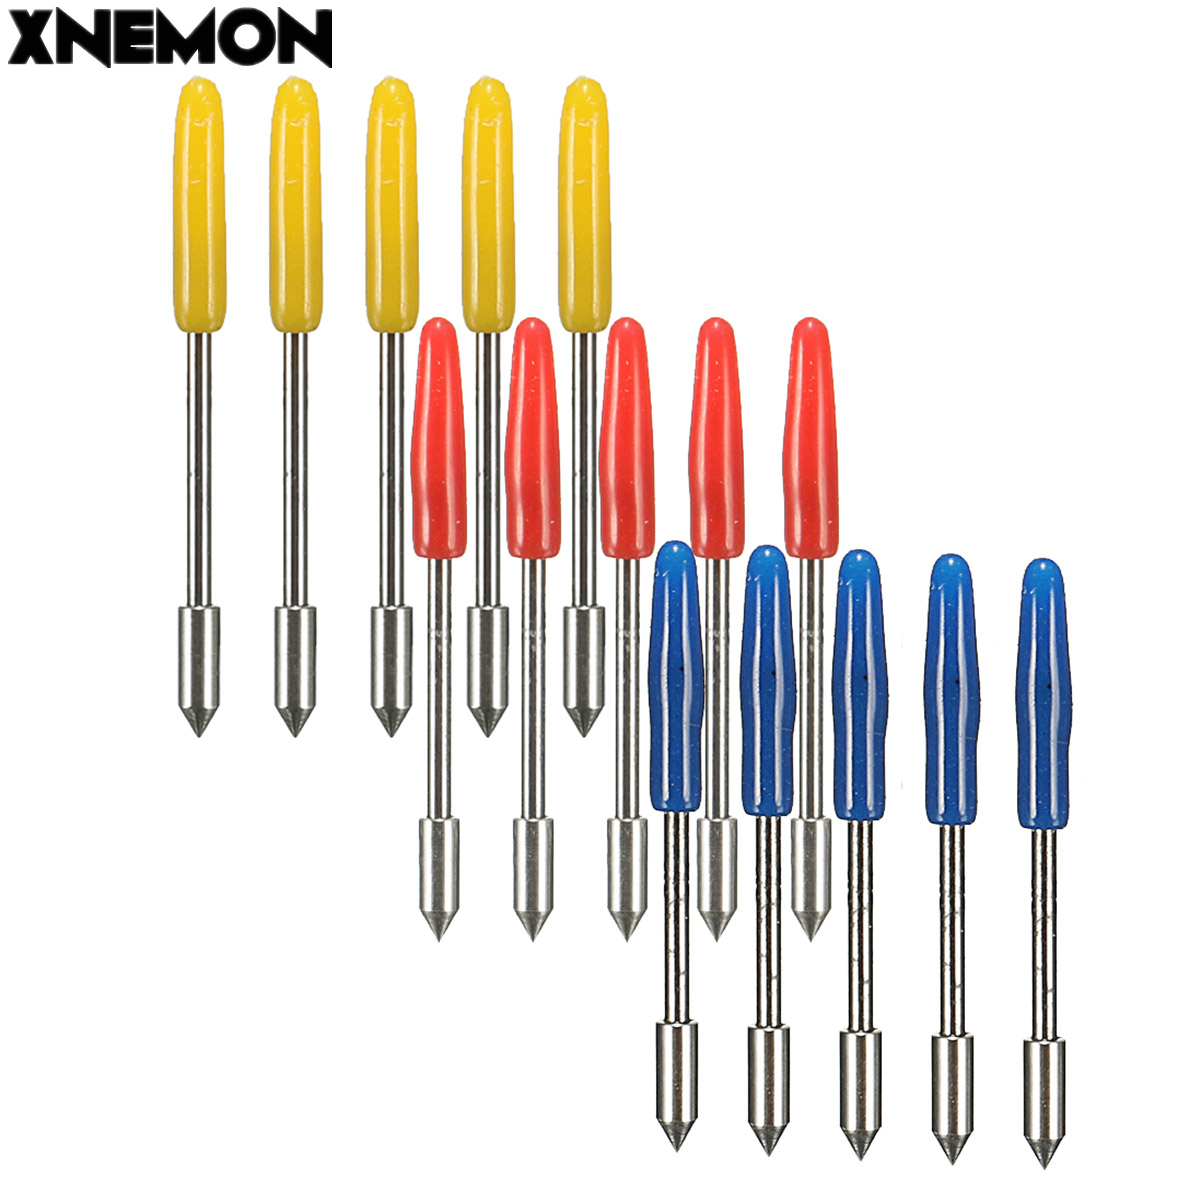 XNEMON 5pcs Engraving Machine Blades Cutter For Graphtec CB09 Vinyl Cutter Plotter Handle Diameter: 1mm Overall Length:20mm